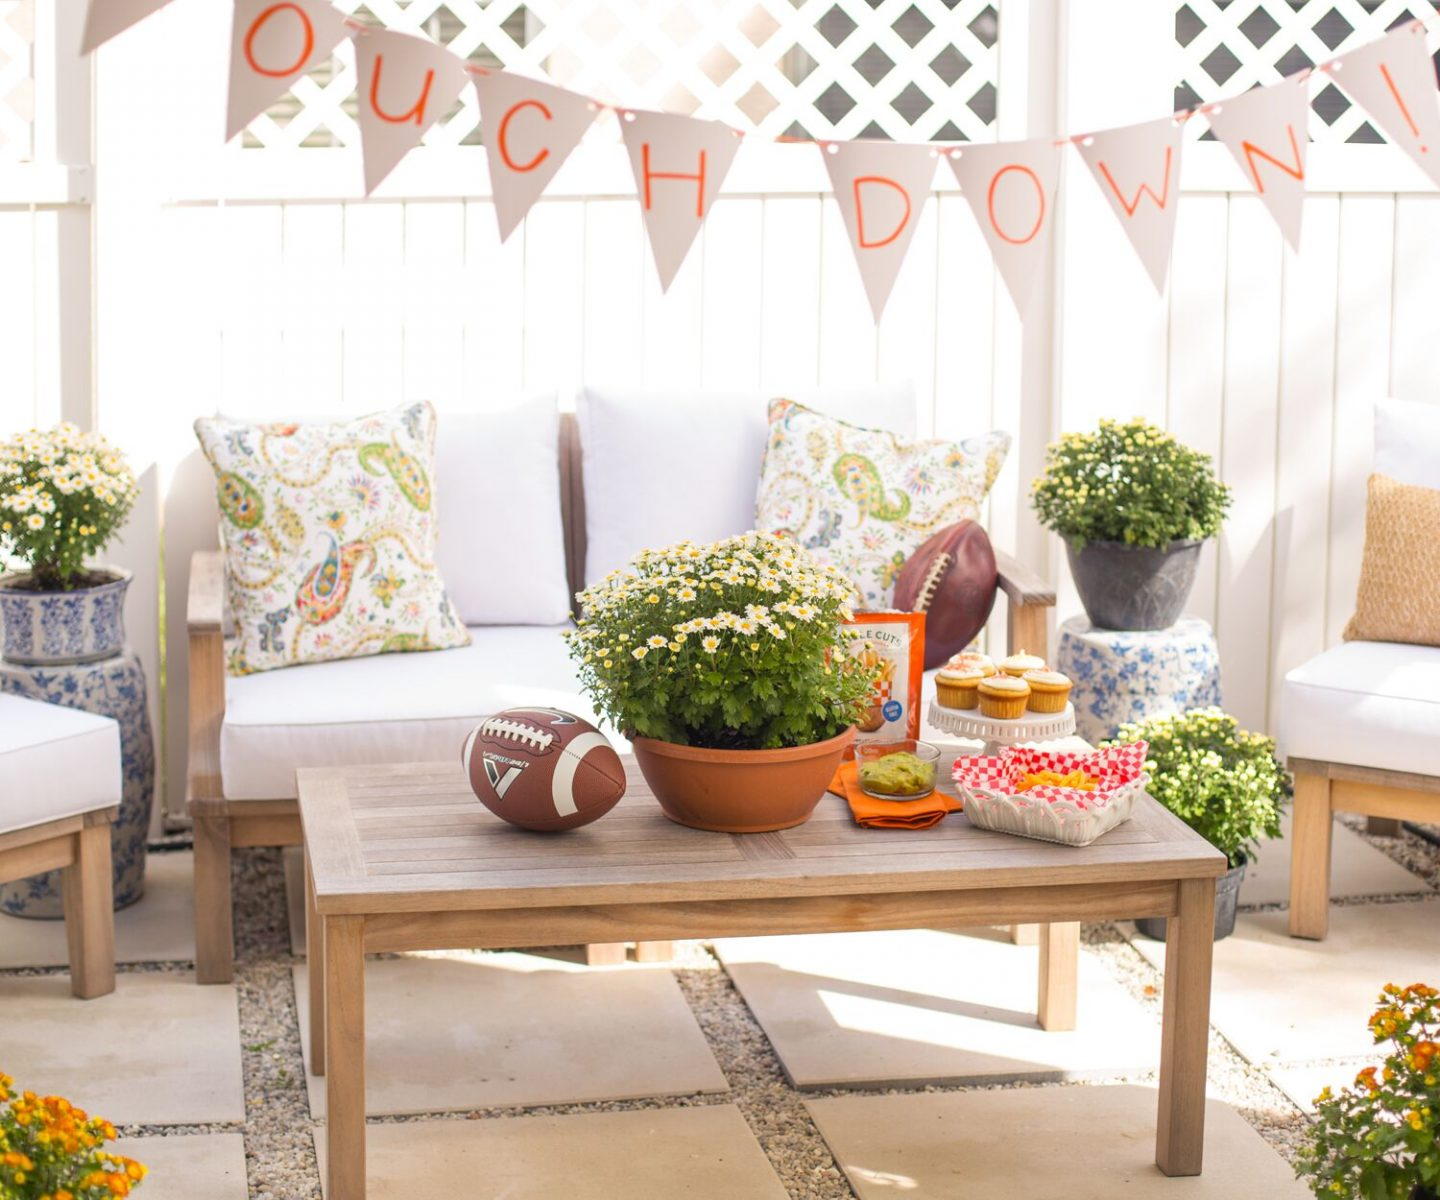 Blogger Ashley Brooke's Tips For Perfecting The At Home Tailgate | www.ashleybrookedesigns.com/blog